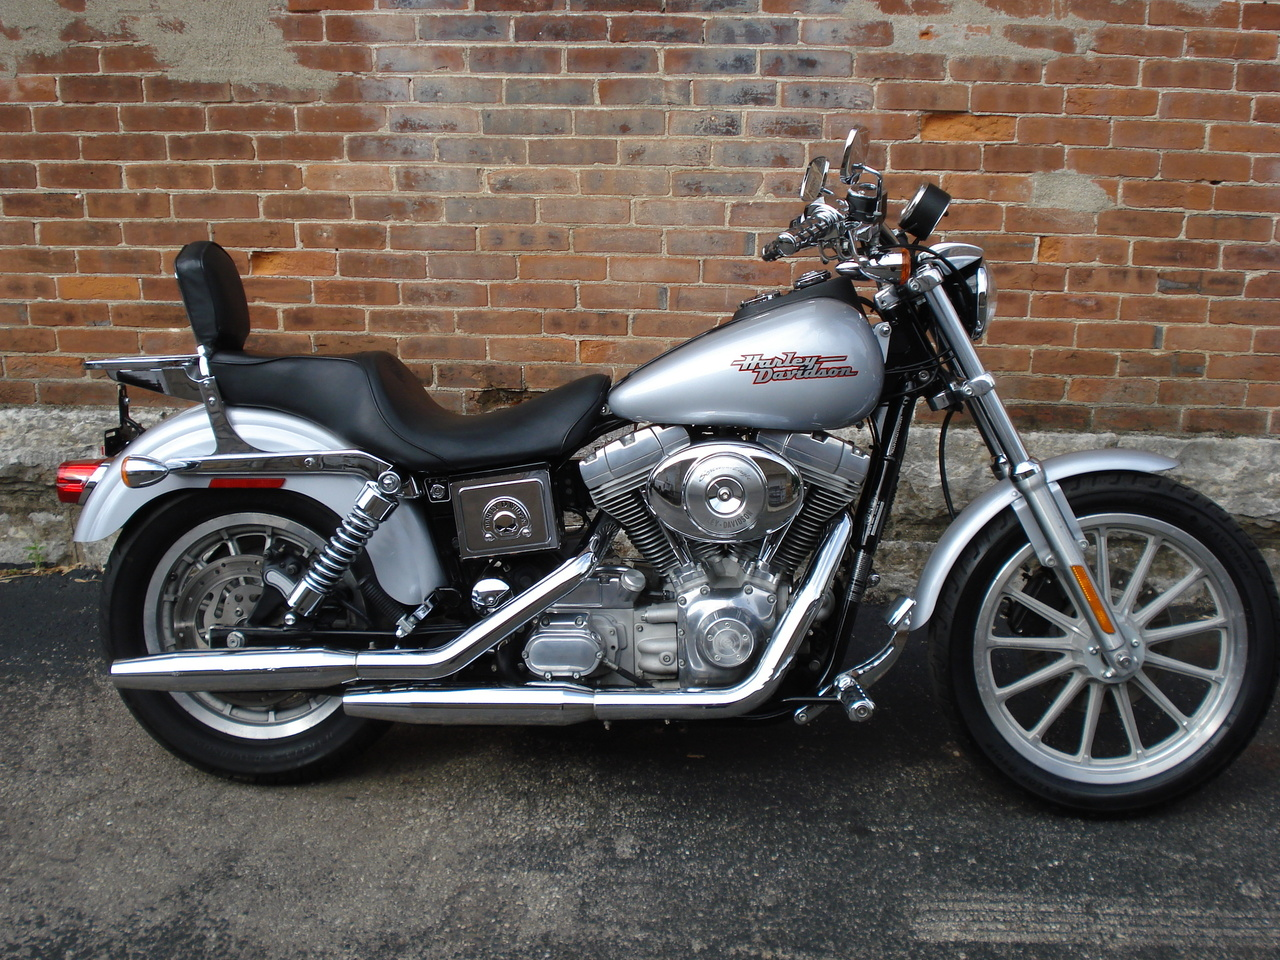 2002 harley davidson fxd dyna super glide pics specs and information. Black Bedroom Furniture Sets. Home Design Ideas